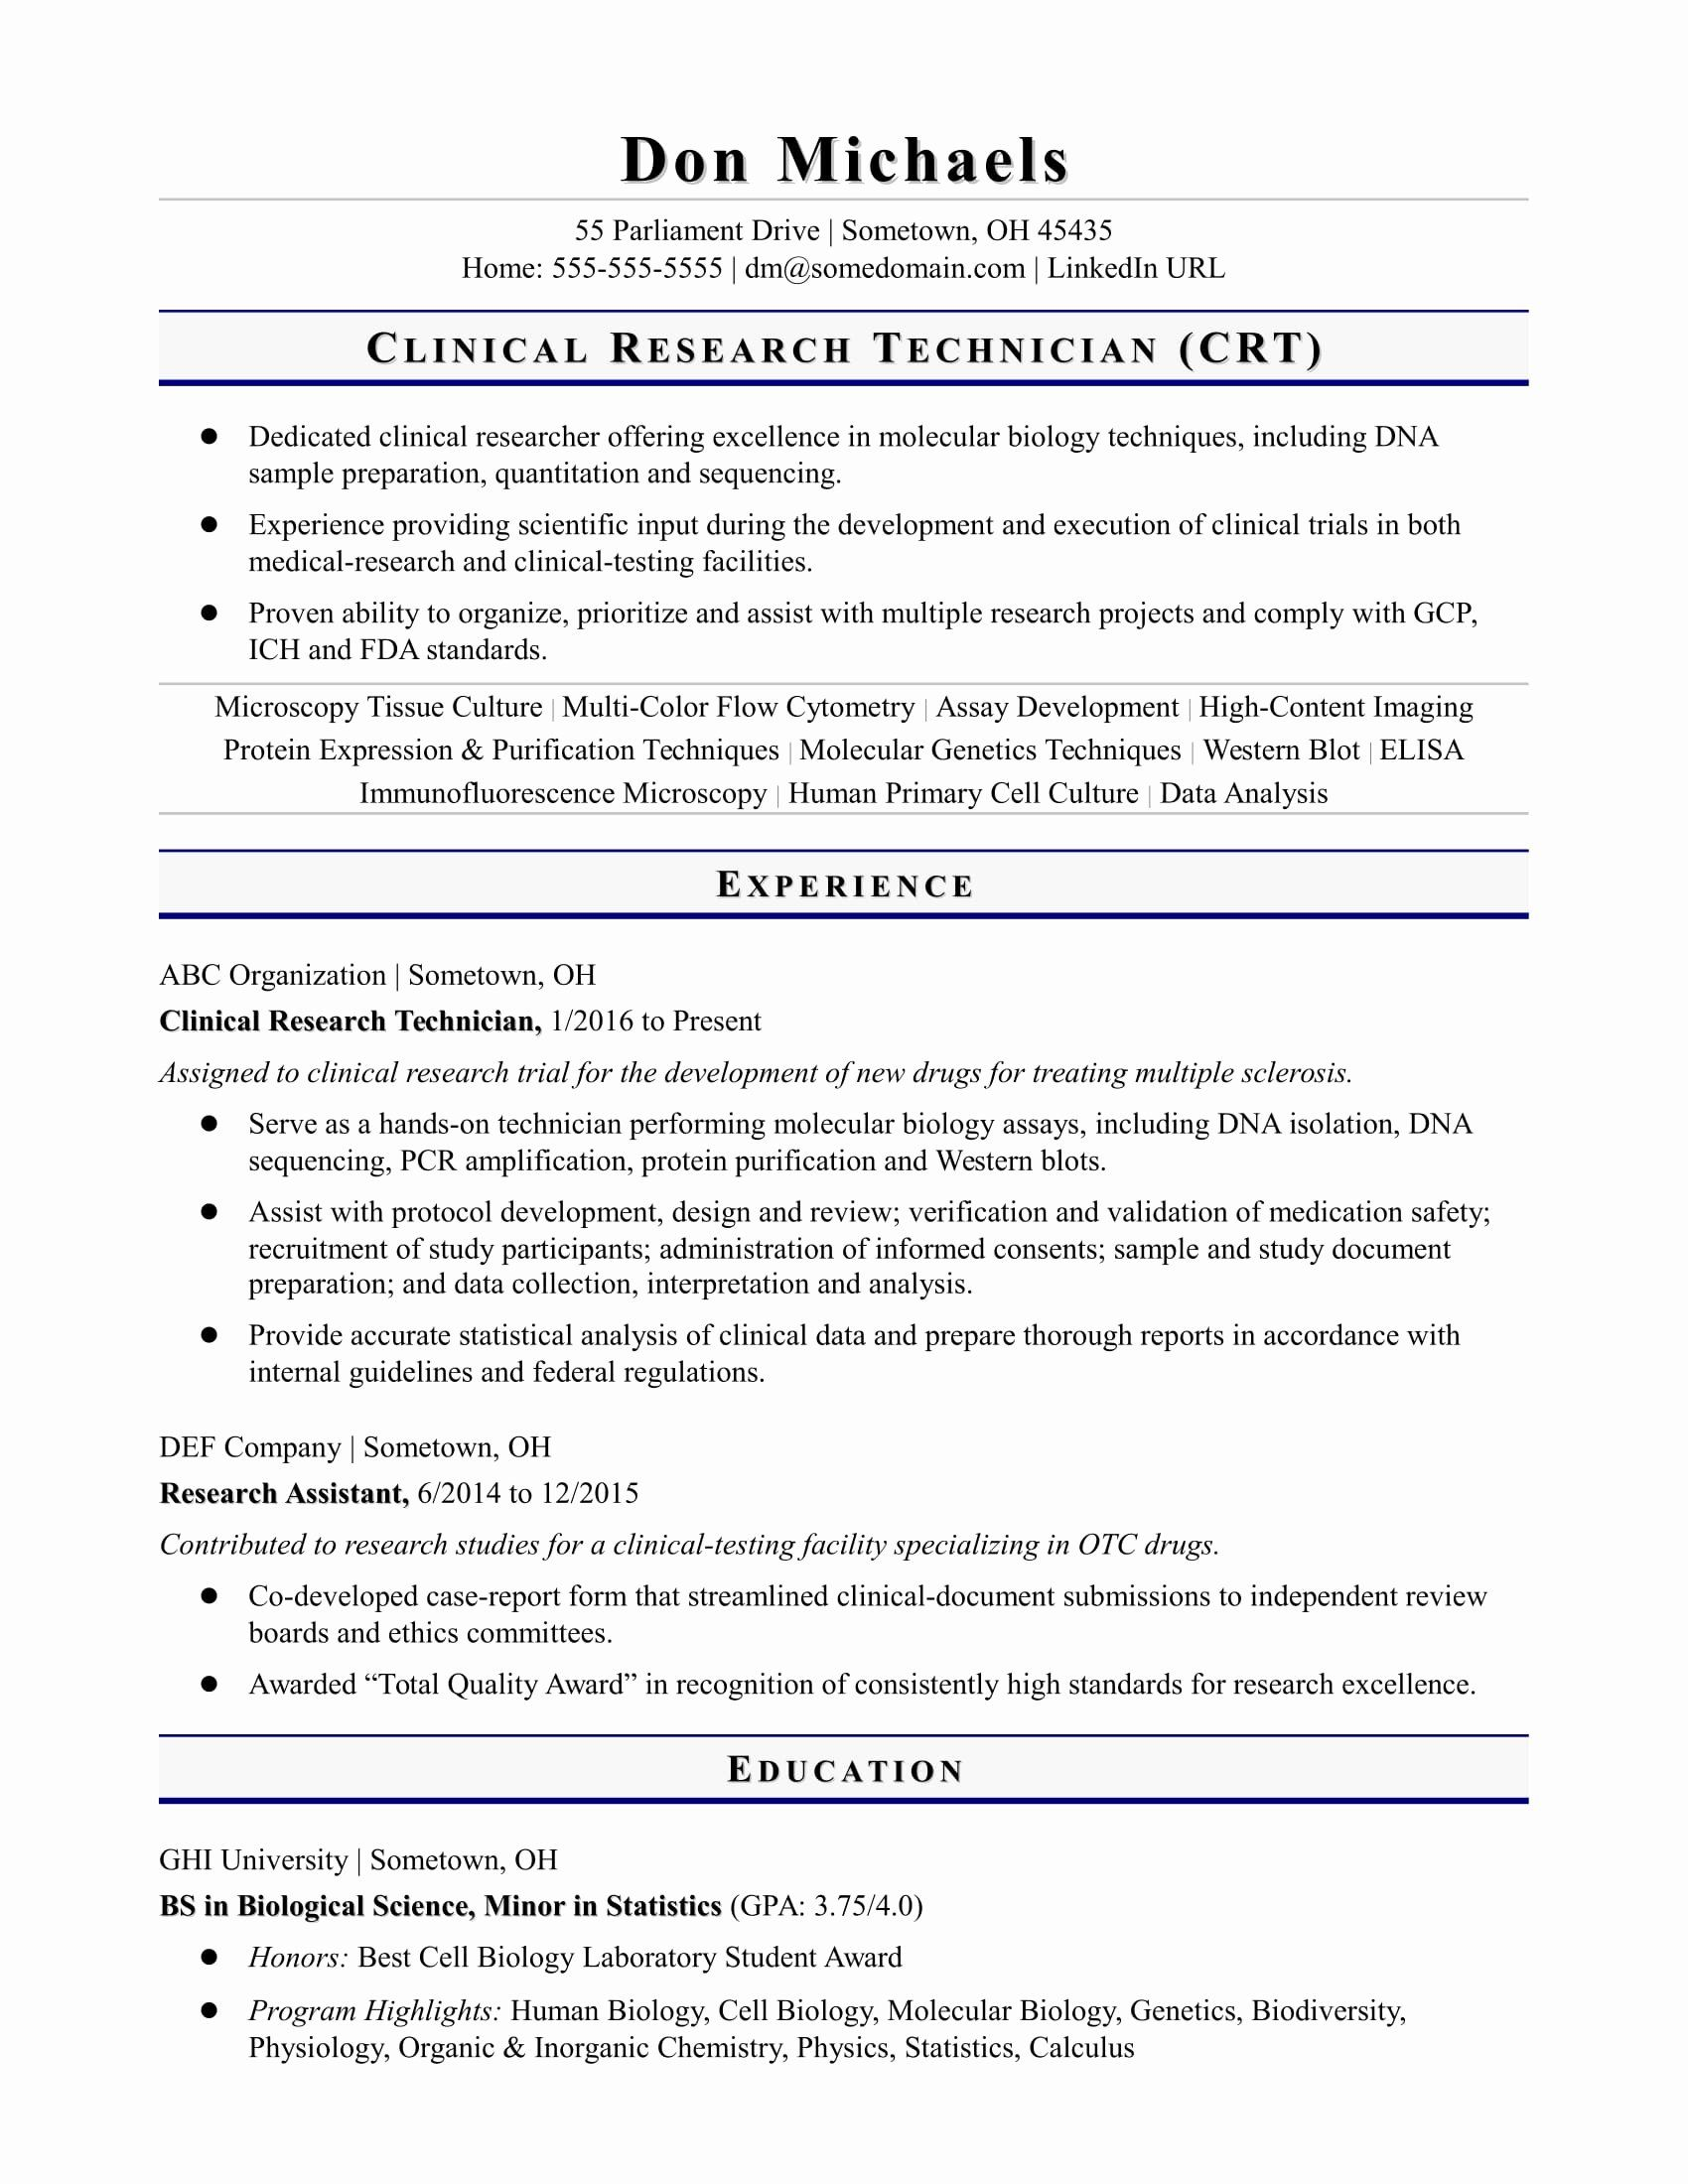 Research Assistant Job Description Resume Unique Entry Level Research Technician Resume Sample Biology Labs Resume Skills Student Resume